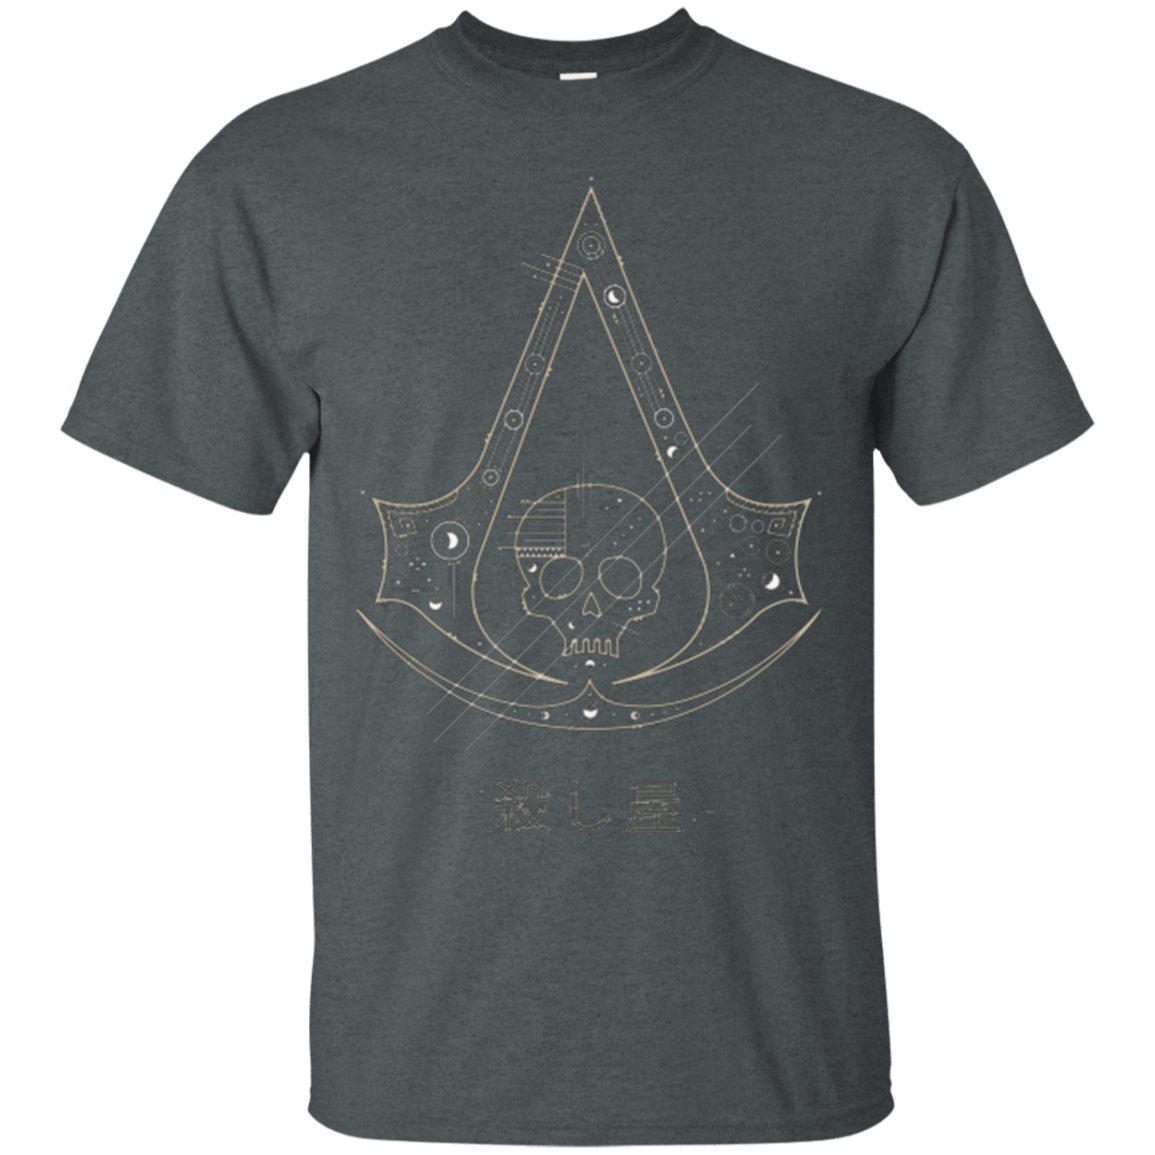 T-Shirts Dark Heather / Small Tech Creed T-Shirt